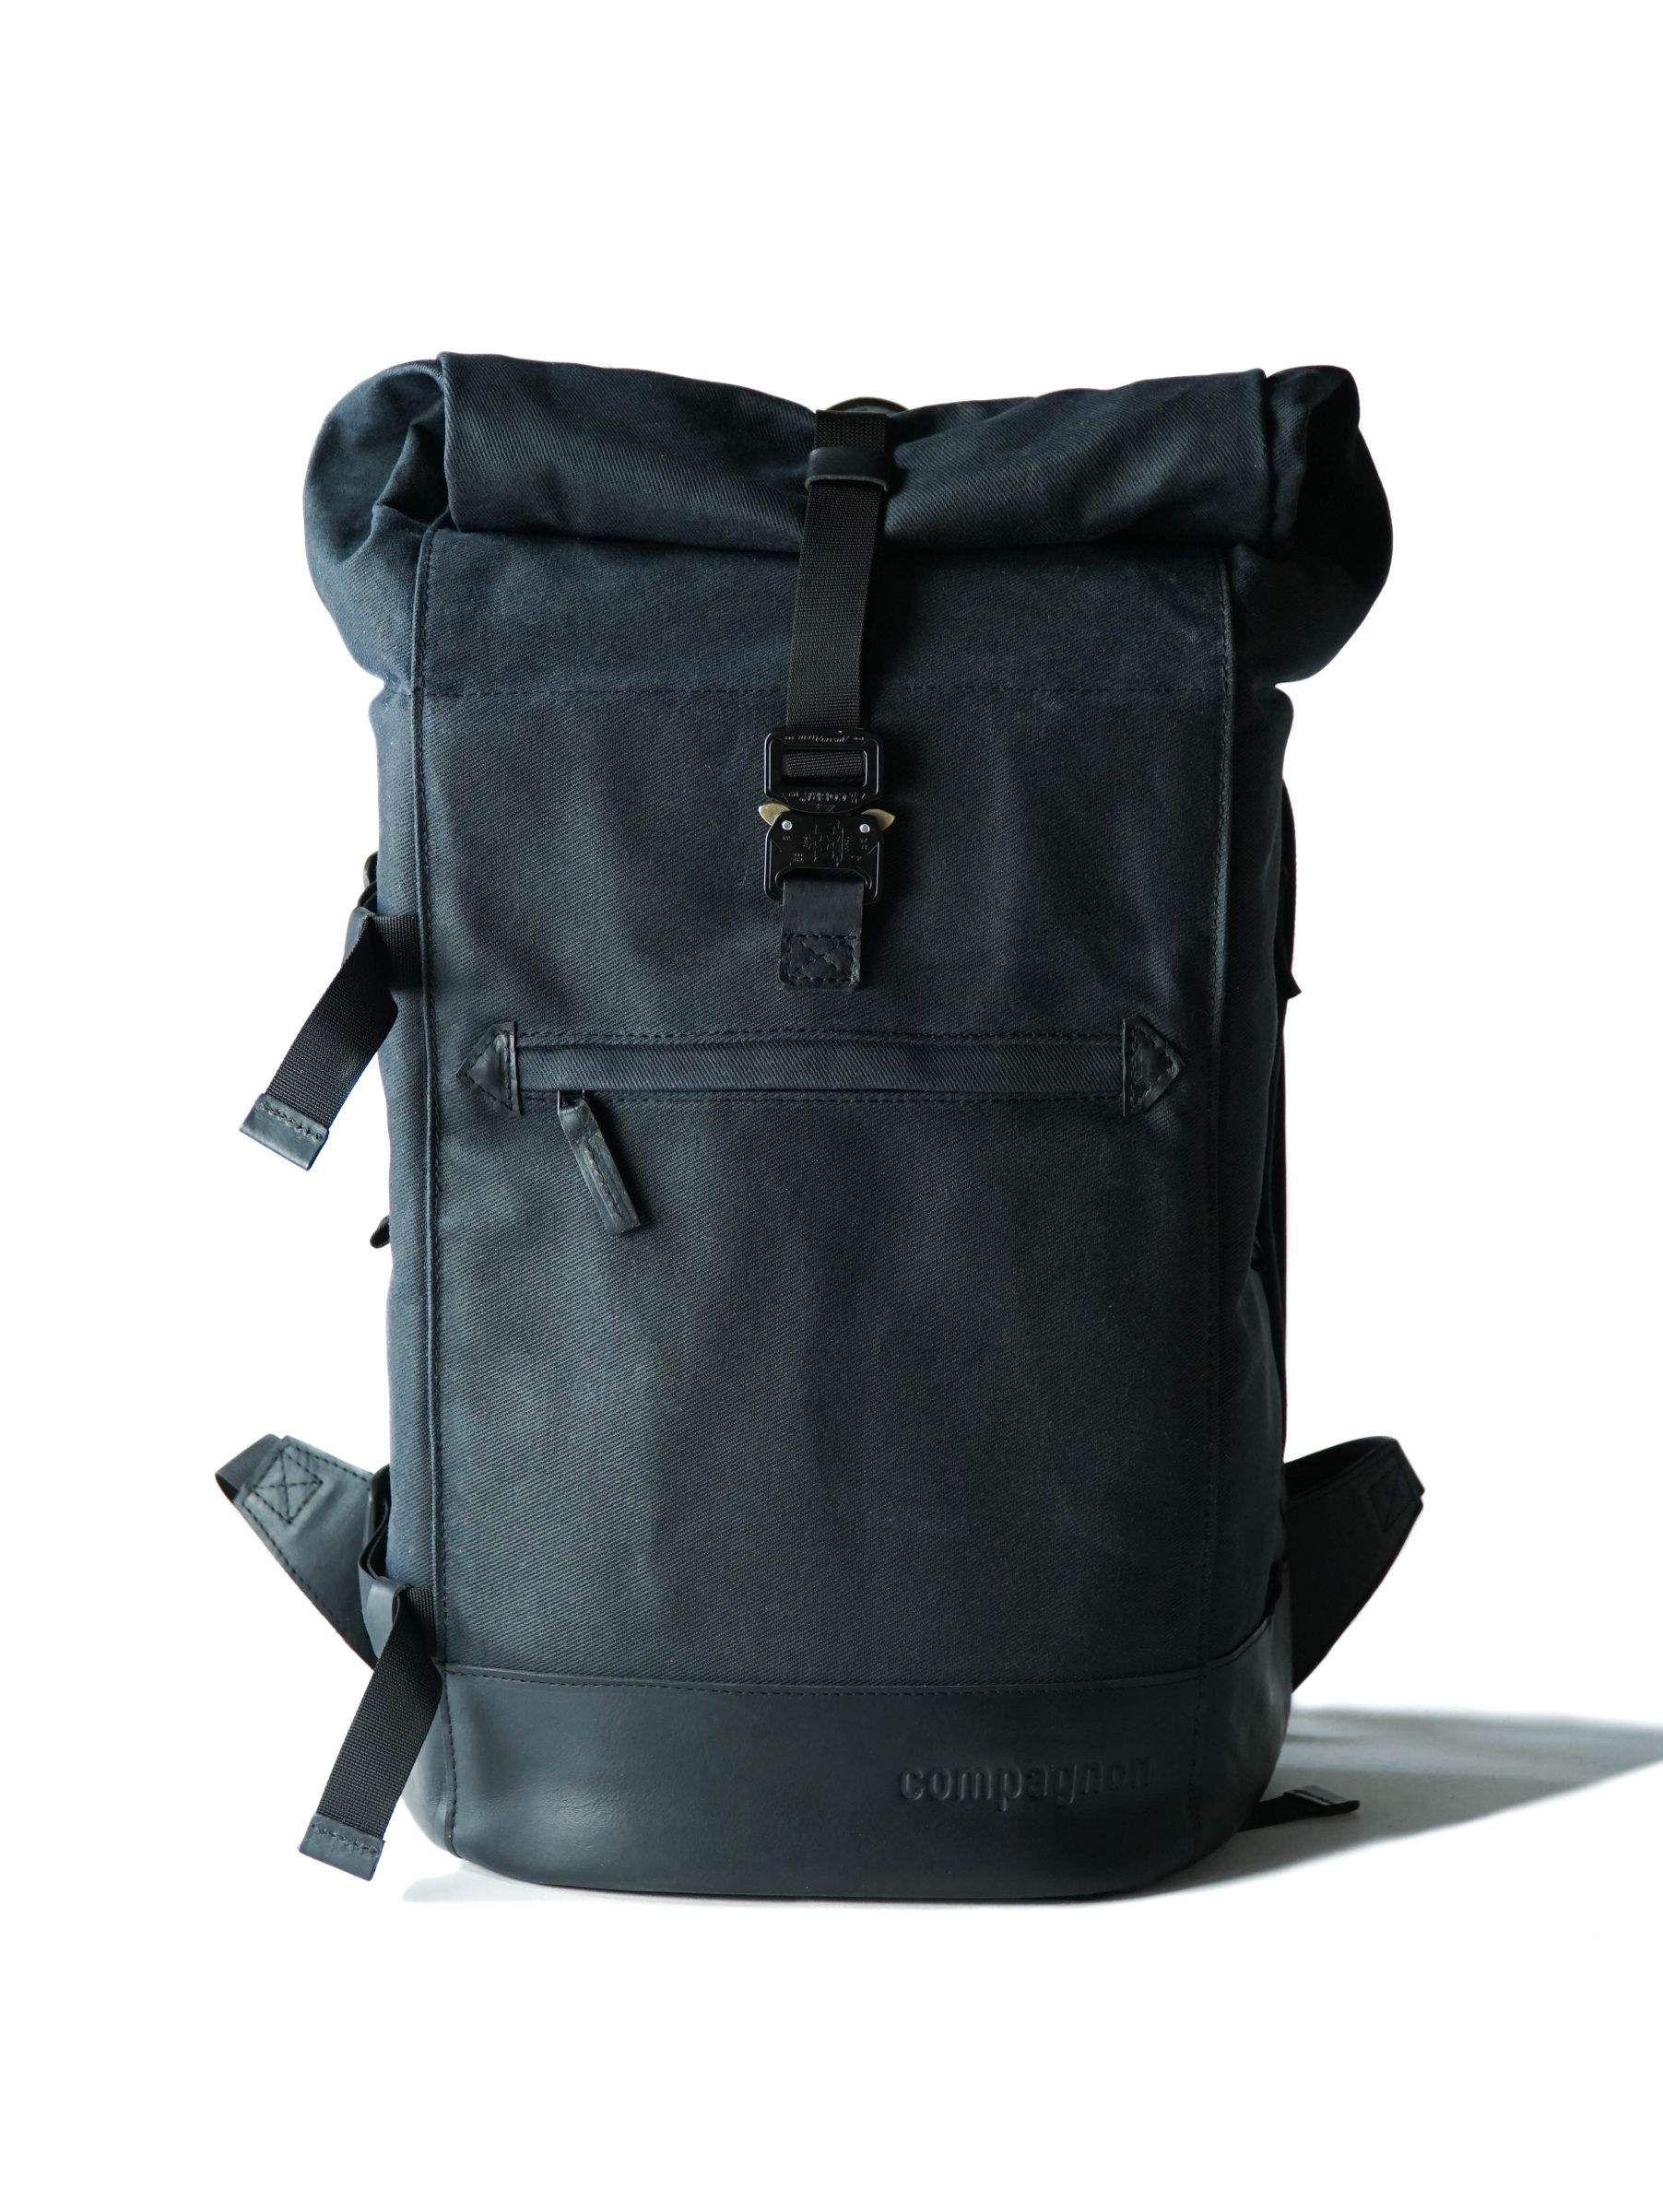 Men's Backpack Tactical Sac A Dos Leather Backpack | Mochila